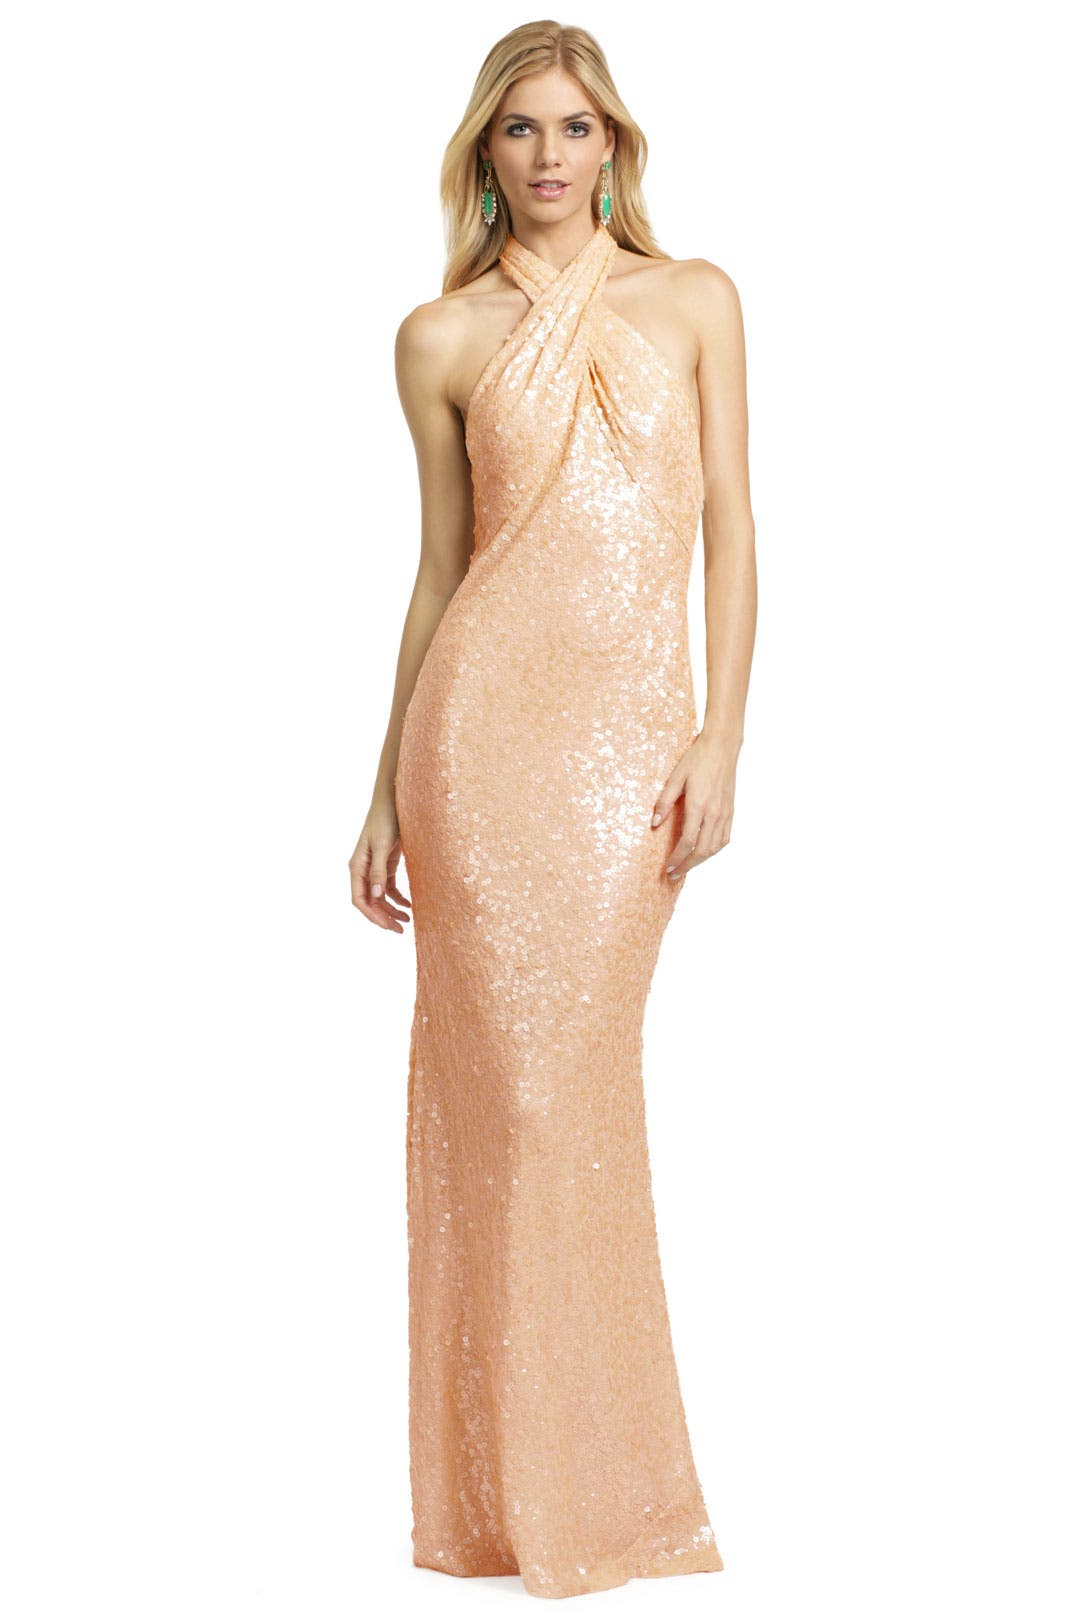 Champagne Fizz Gown by Badgley Mischka